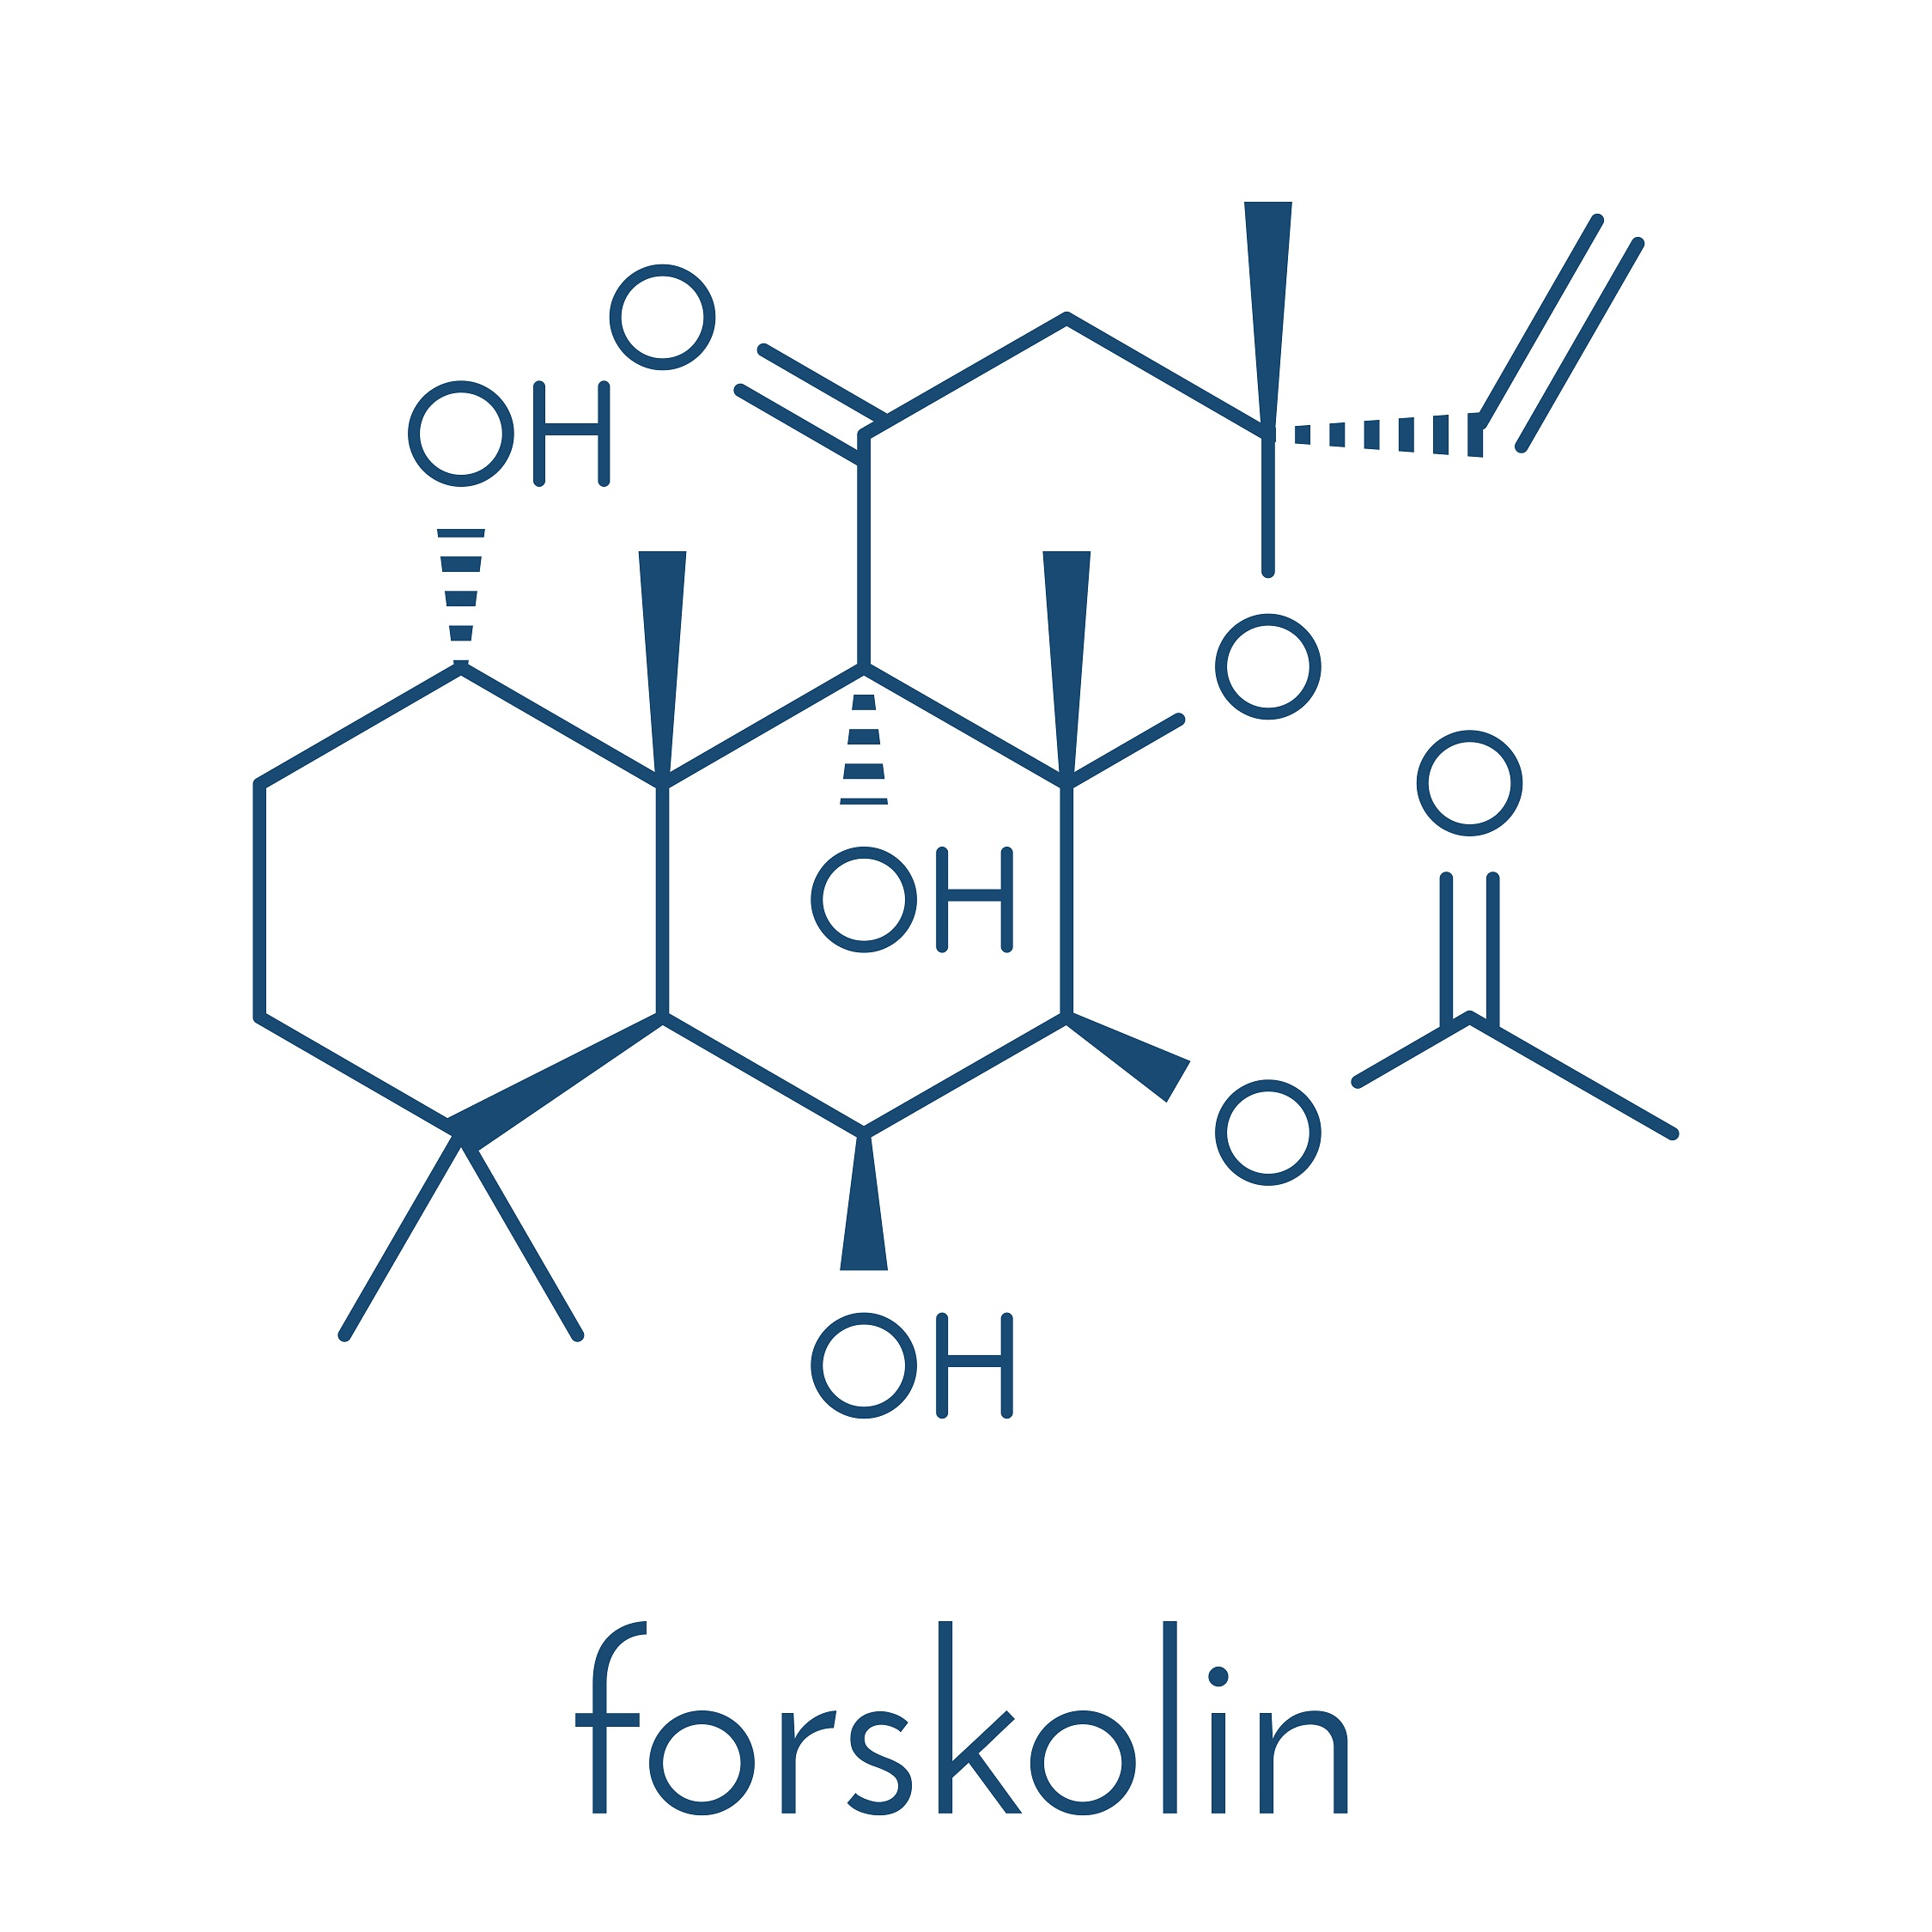 Forskolin - chemical formula